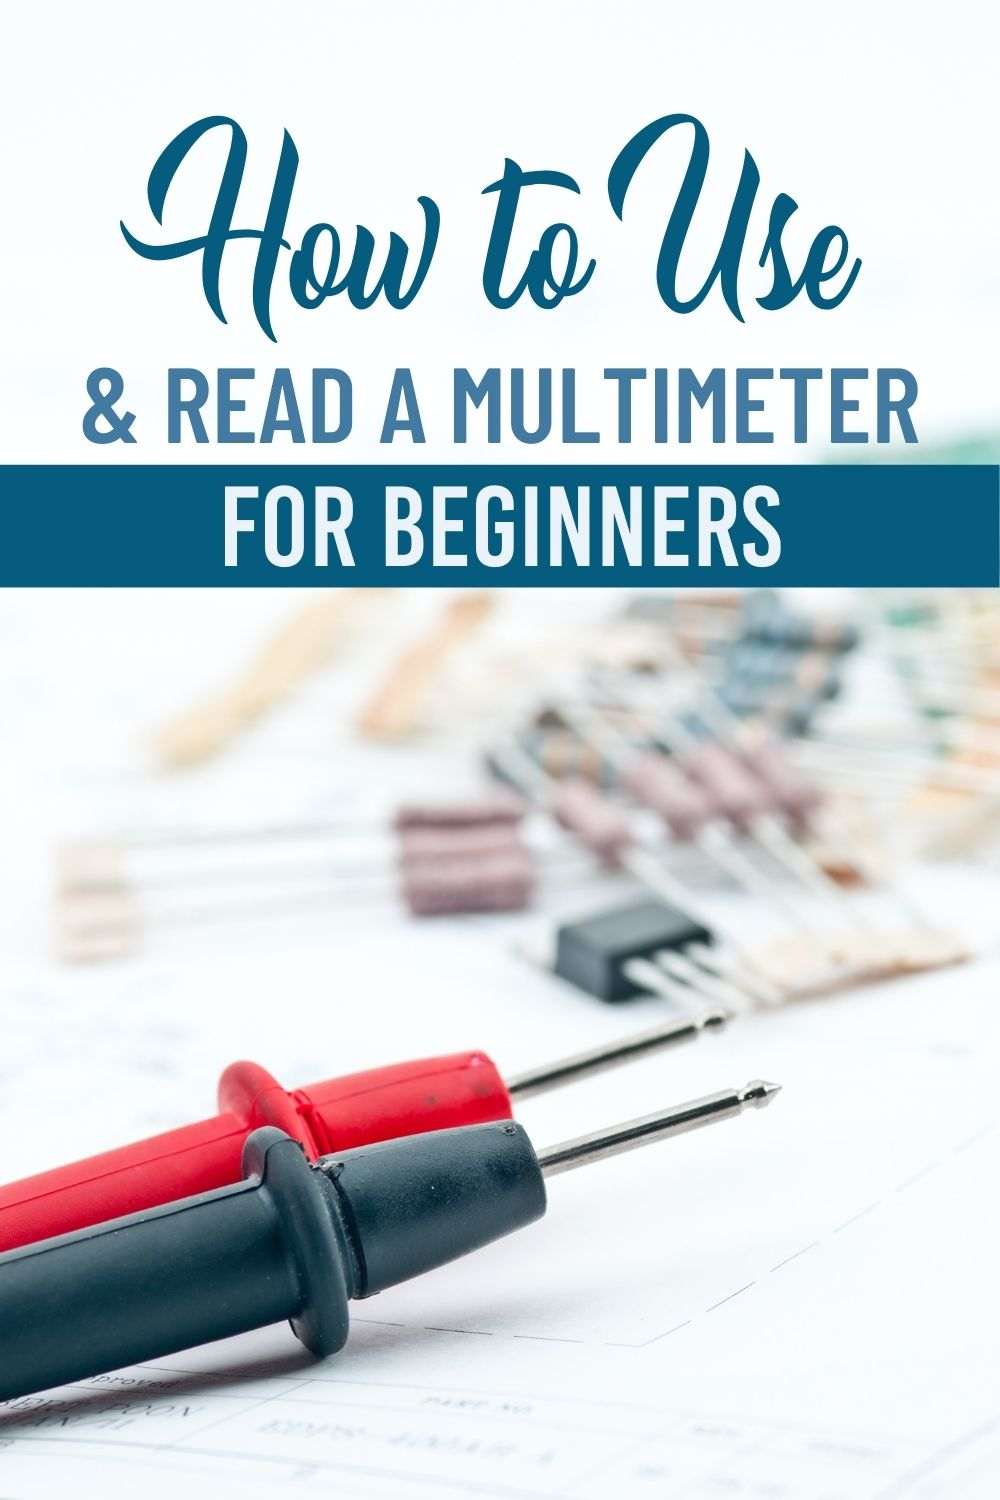 How to Use & Read a Multimeter for Beginners pin image